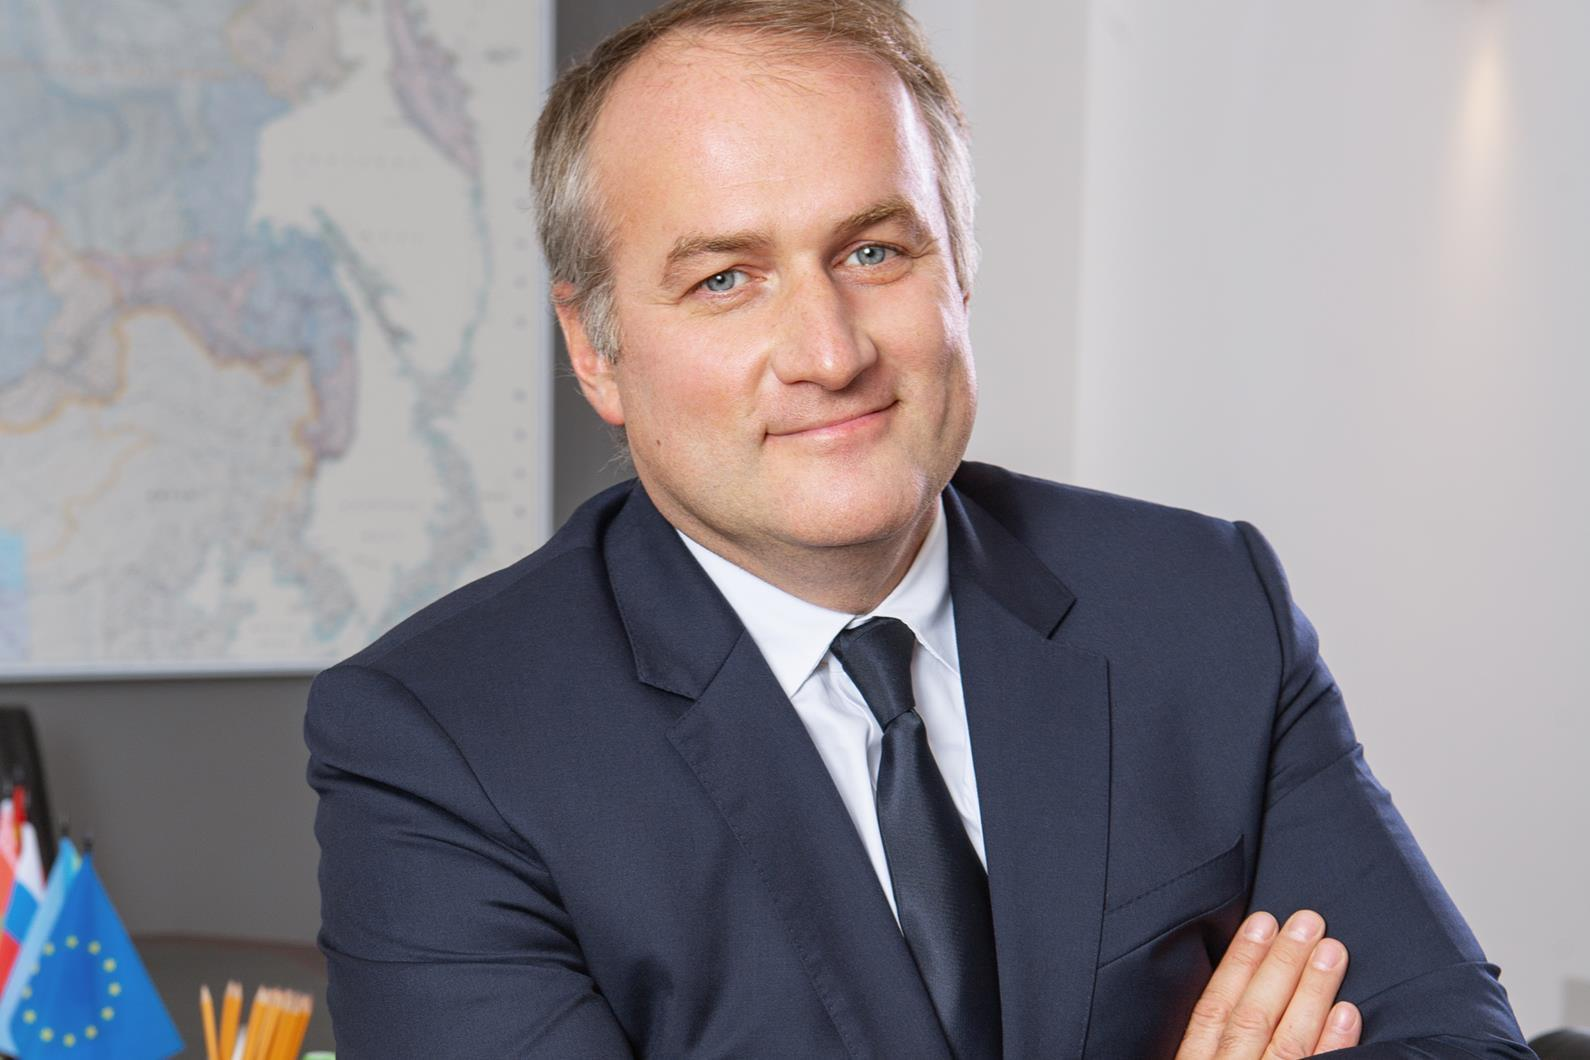 UTLC ERA CEO Grom:China-Europe freight train sets record in transportation of goods